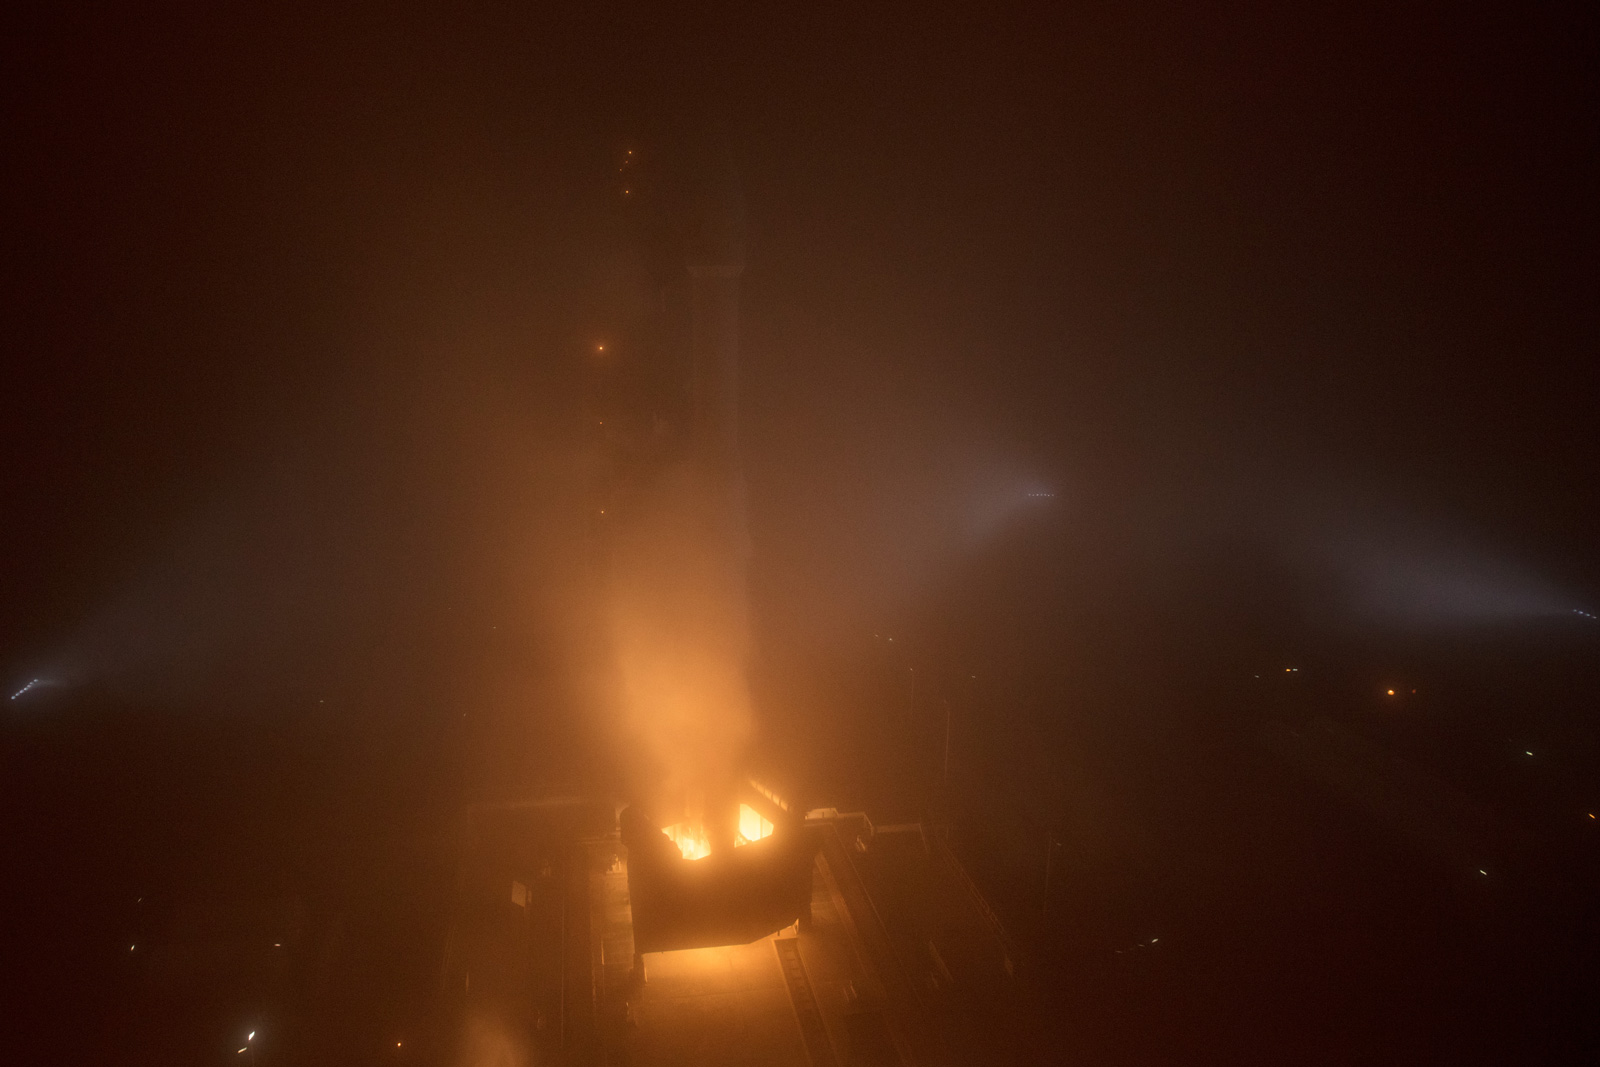 "The NASA InSight spacecraft launches onboard a United Launch Alliance Atlas-V rocket, Saturday, May 5, 2018, from Vandenberg Air Force Base in California. InSight, short for Interior Exploration using Seismic Investigations, Geodesy and Heat Transport, is a Mars lander designed to study the ""inner space"" of Mars: its crust, mantle, and core."